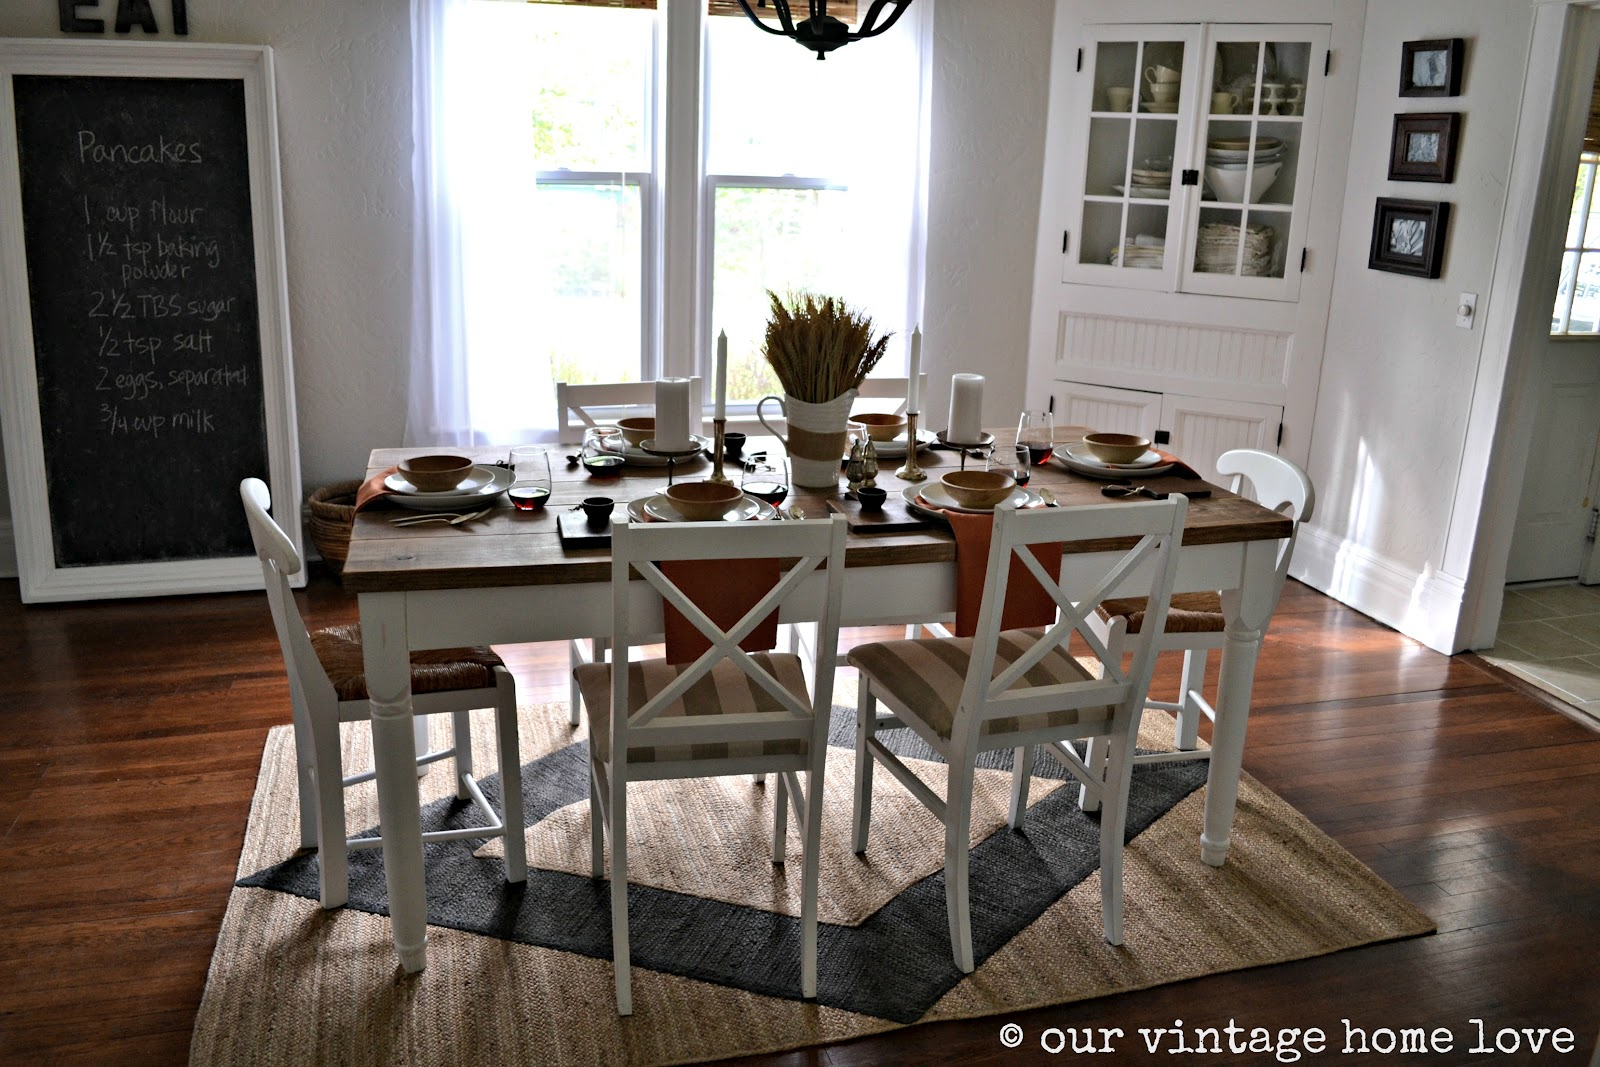 vintage home love: Autumn Table Decor and a Vintage ...